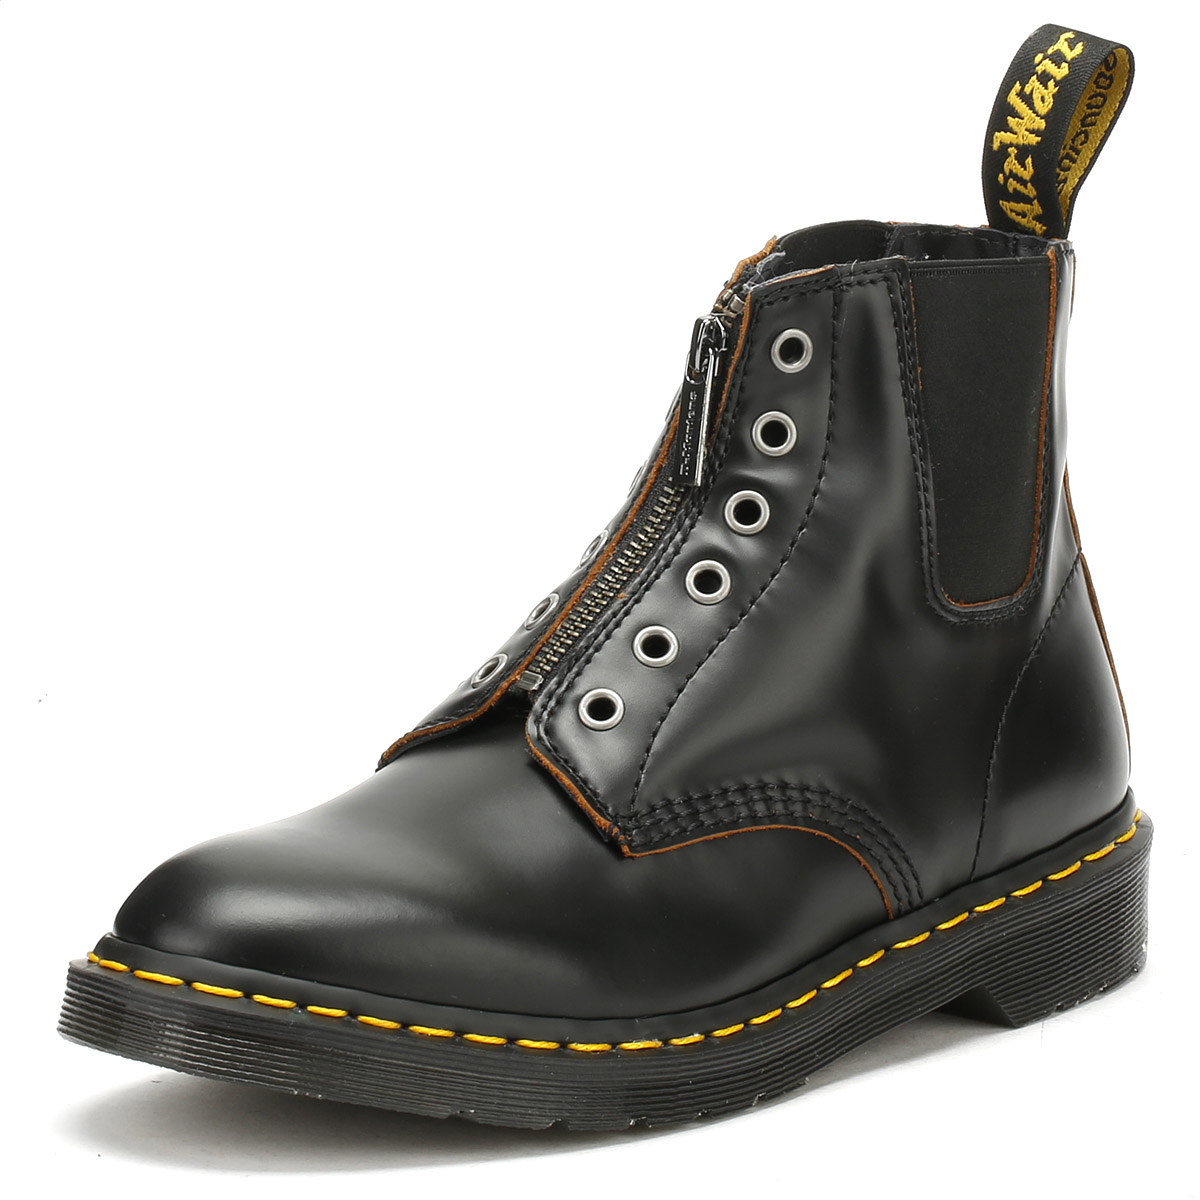 Dr. Martens Mens Boots Black Vintage Leather 101 GST Zip Up Winter Shoes